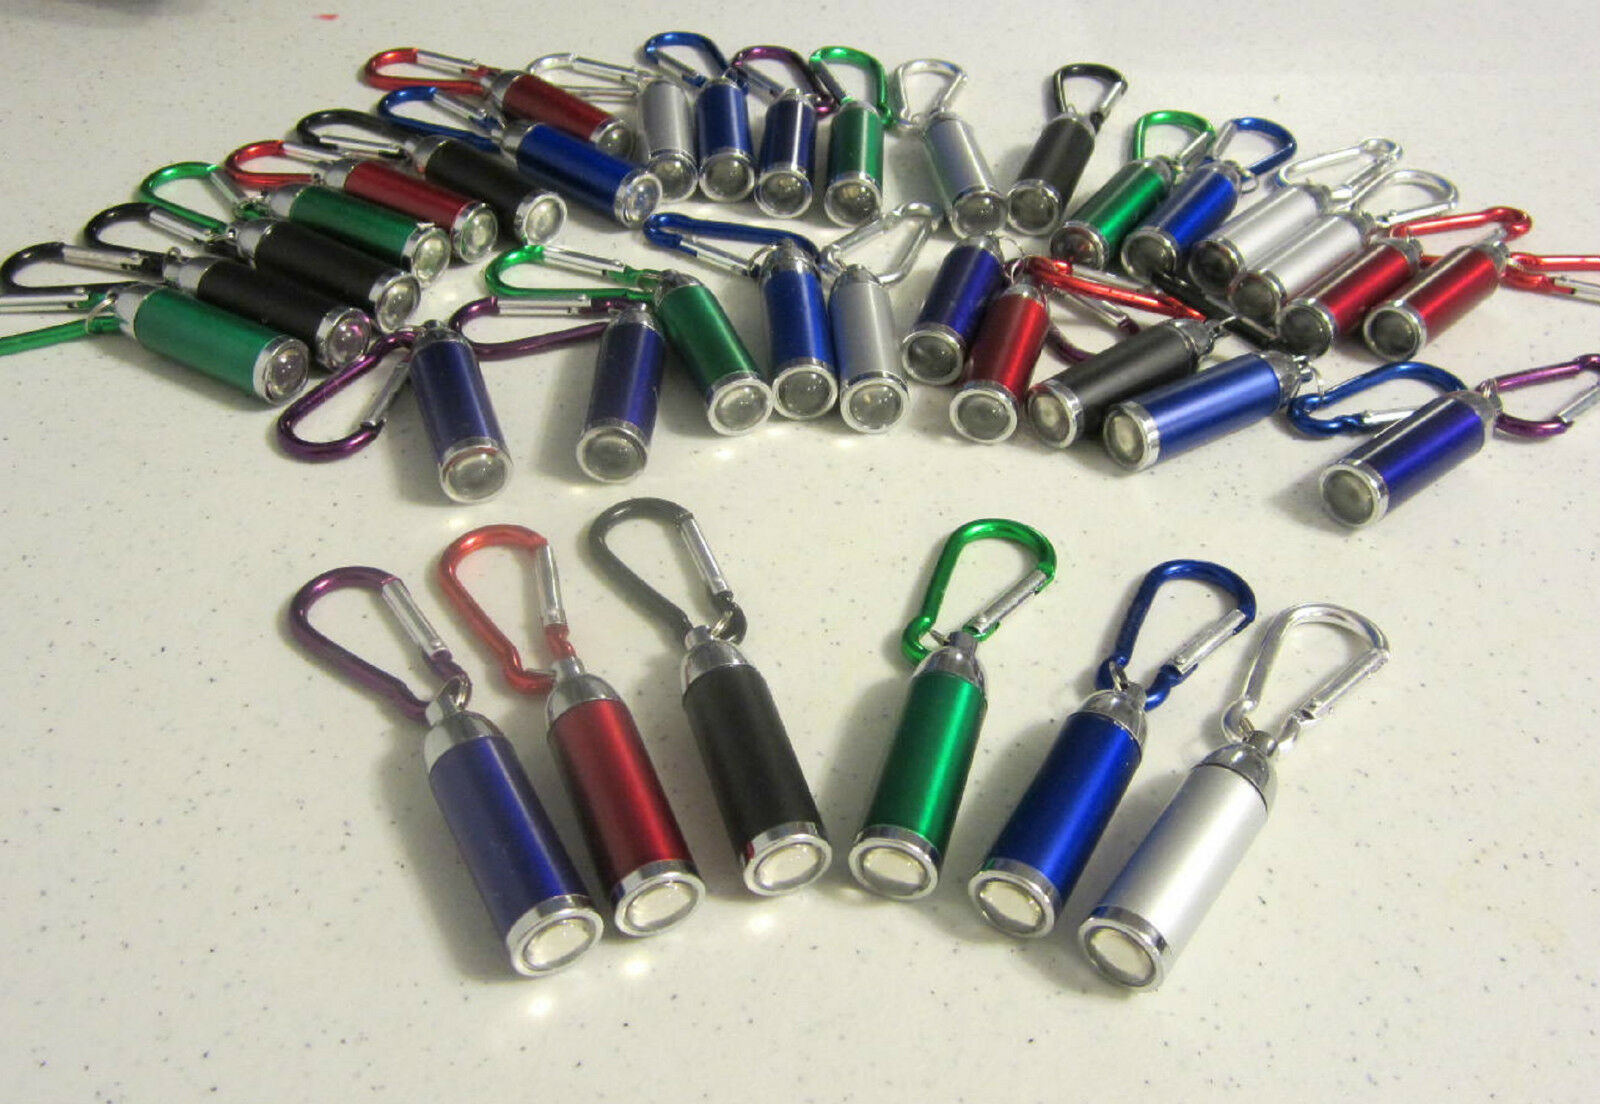 100 NEW CARABINER LED FLASHLIGHT KEYCHAINS WITH ZOOMABLE LIGHT KEY CHAIN RING